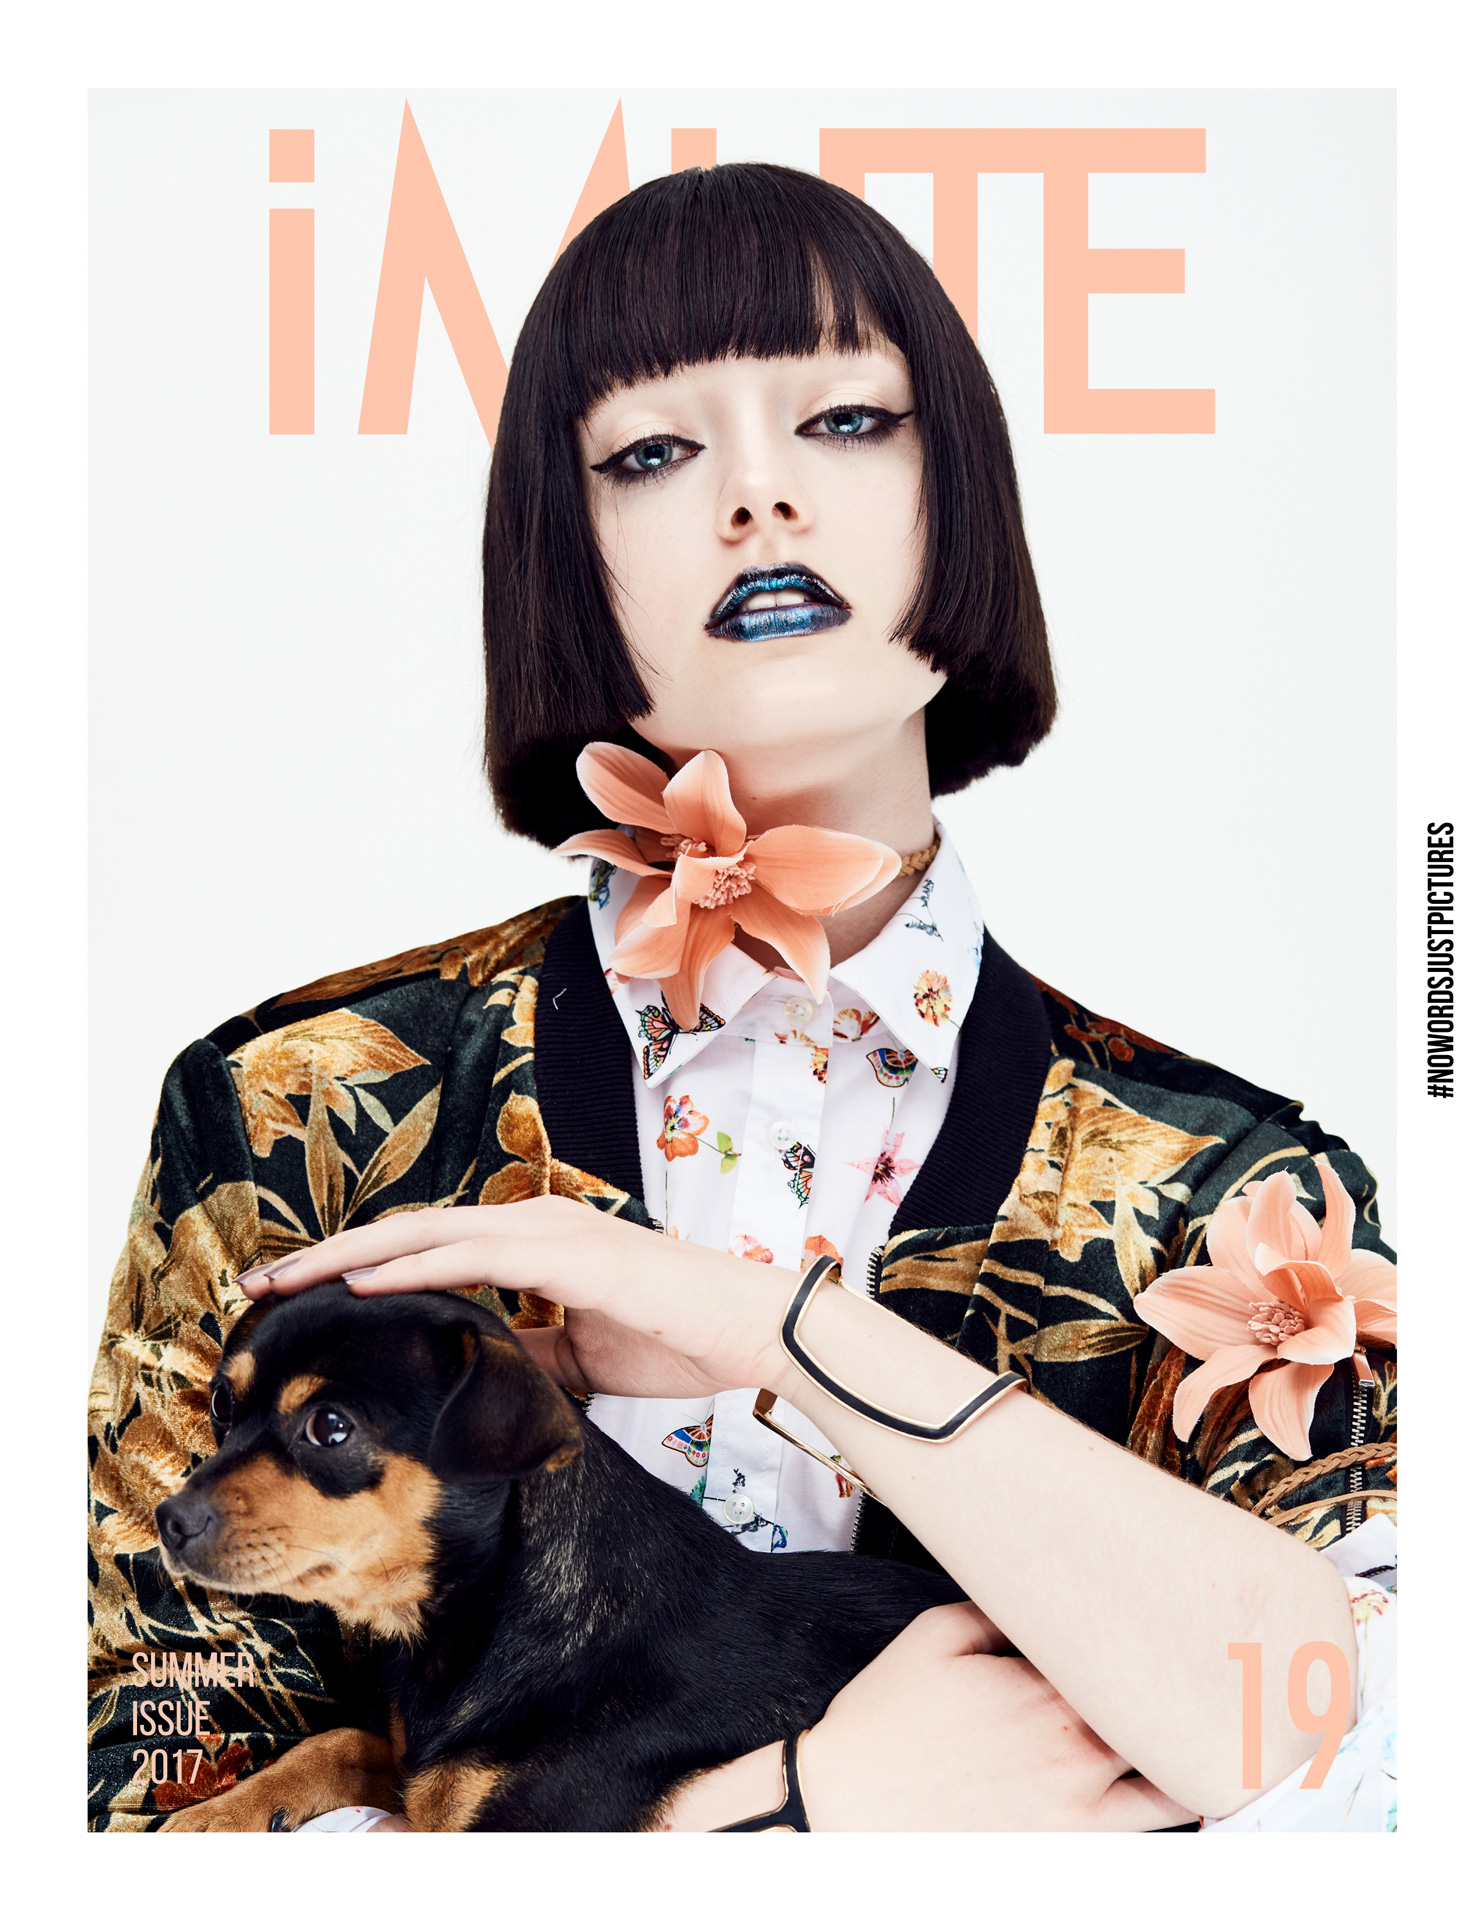 The Florist | iMute Magazine #19 | Summer Issue Photographer | Reza Norifarahani Models | Anja Abraham @ MD Management Stylist | Julia Dorothee Müller @ Bigoudi Makeup | Slavica Pavlovic